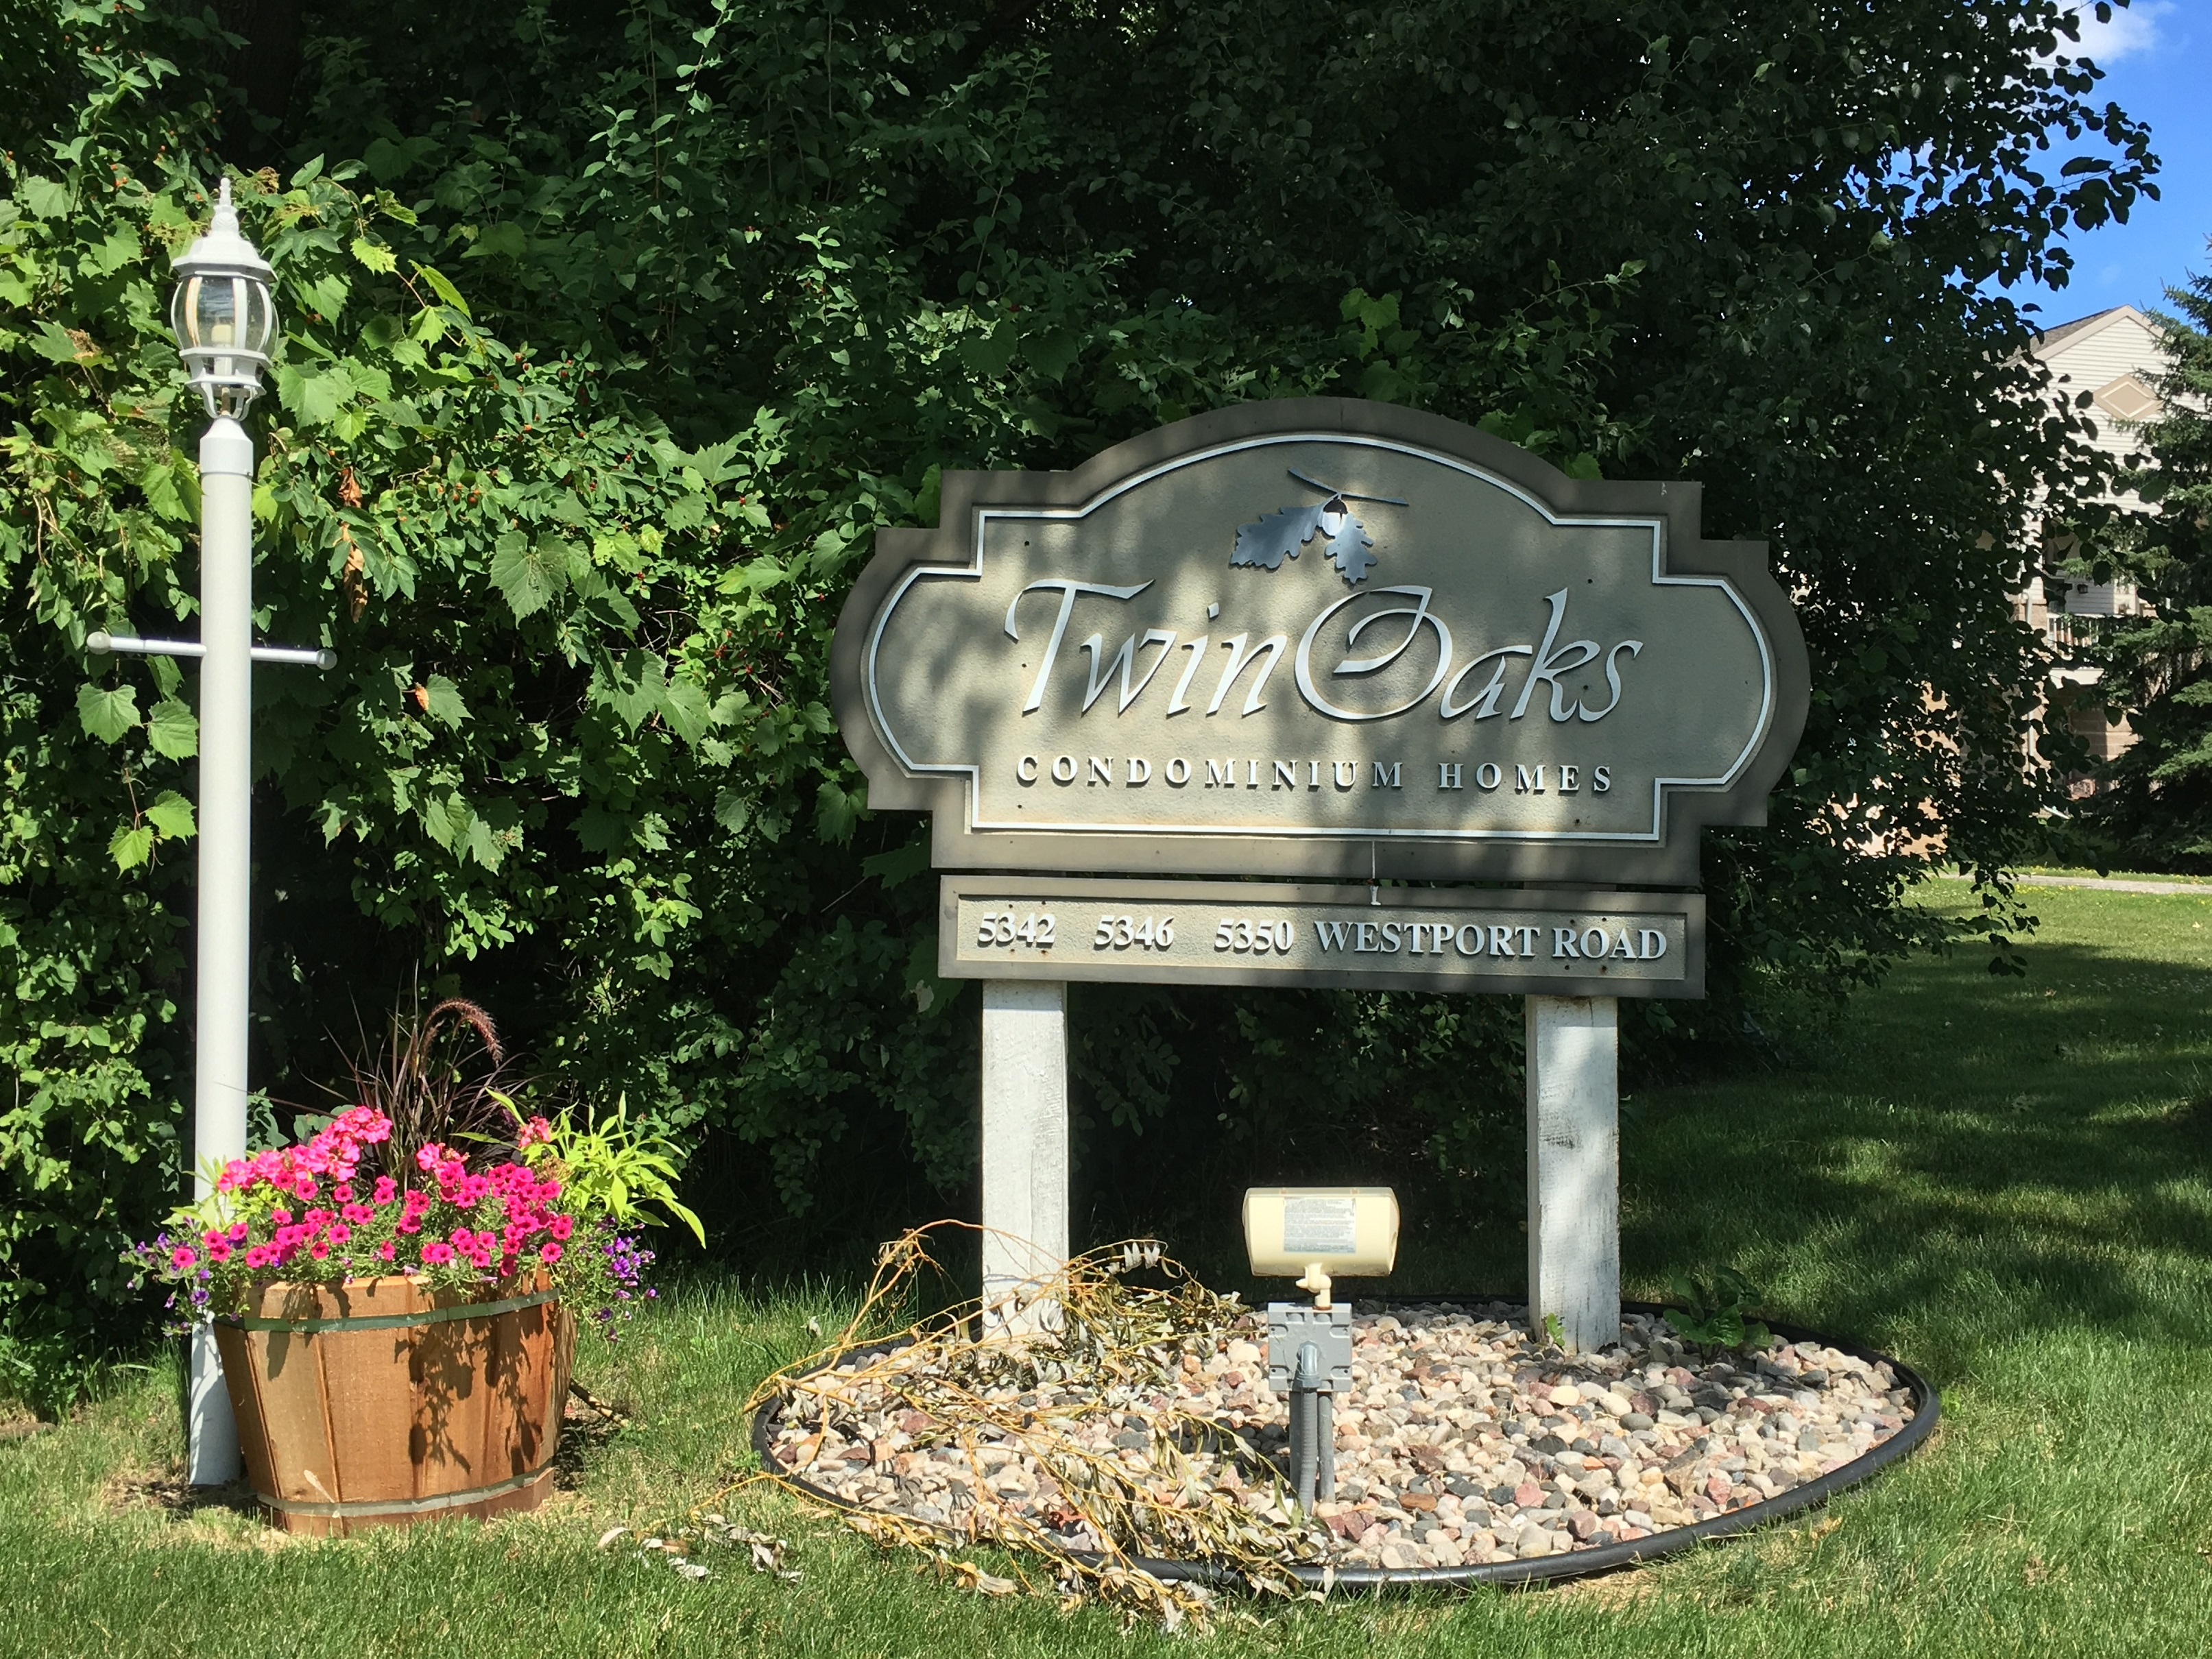 Twin Oaks Condos for Sale - Westport, WI - Lake & City Homes